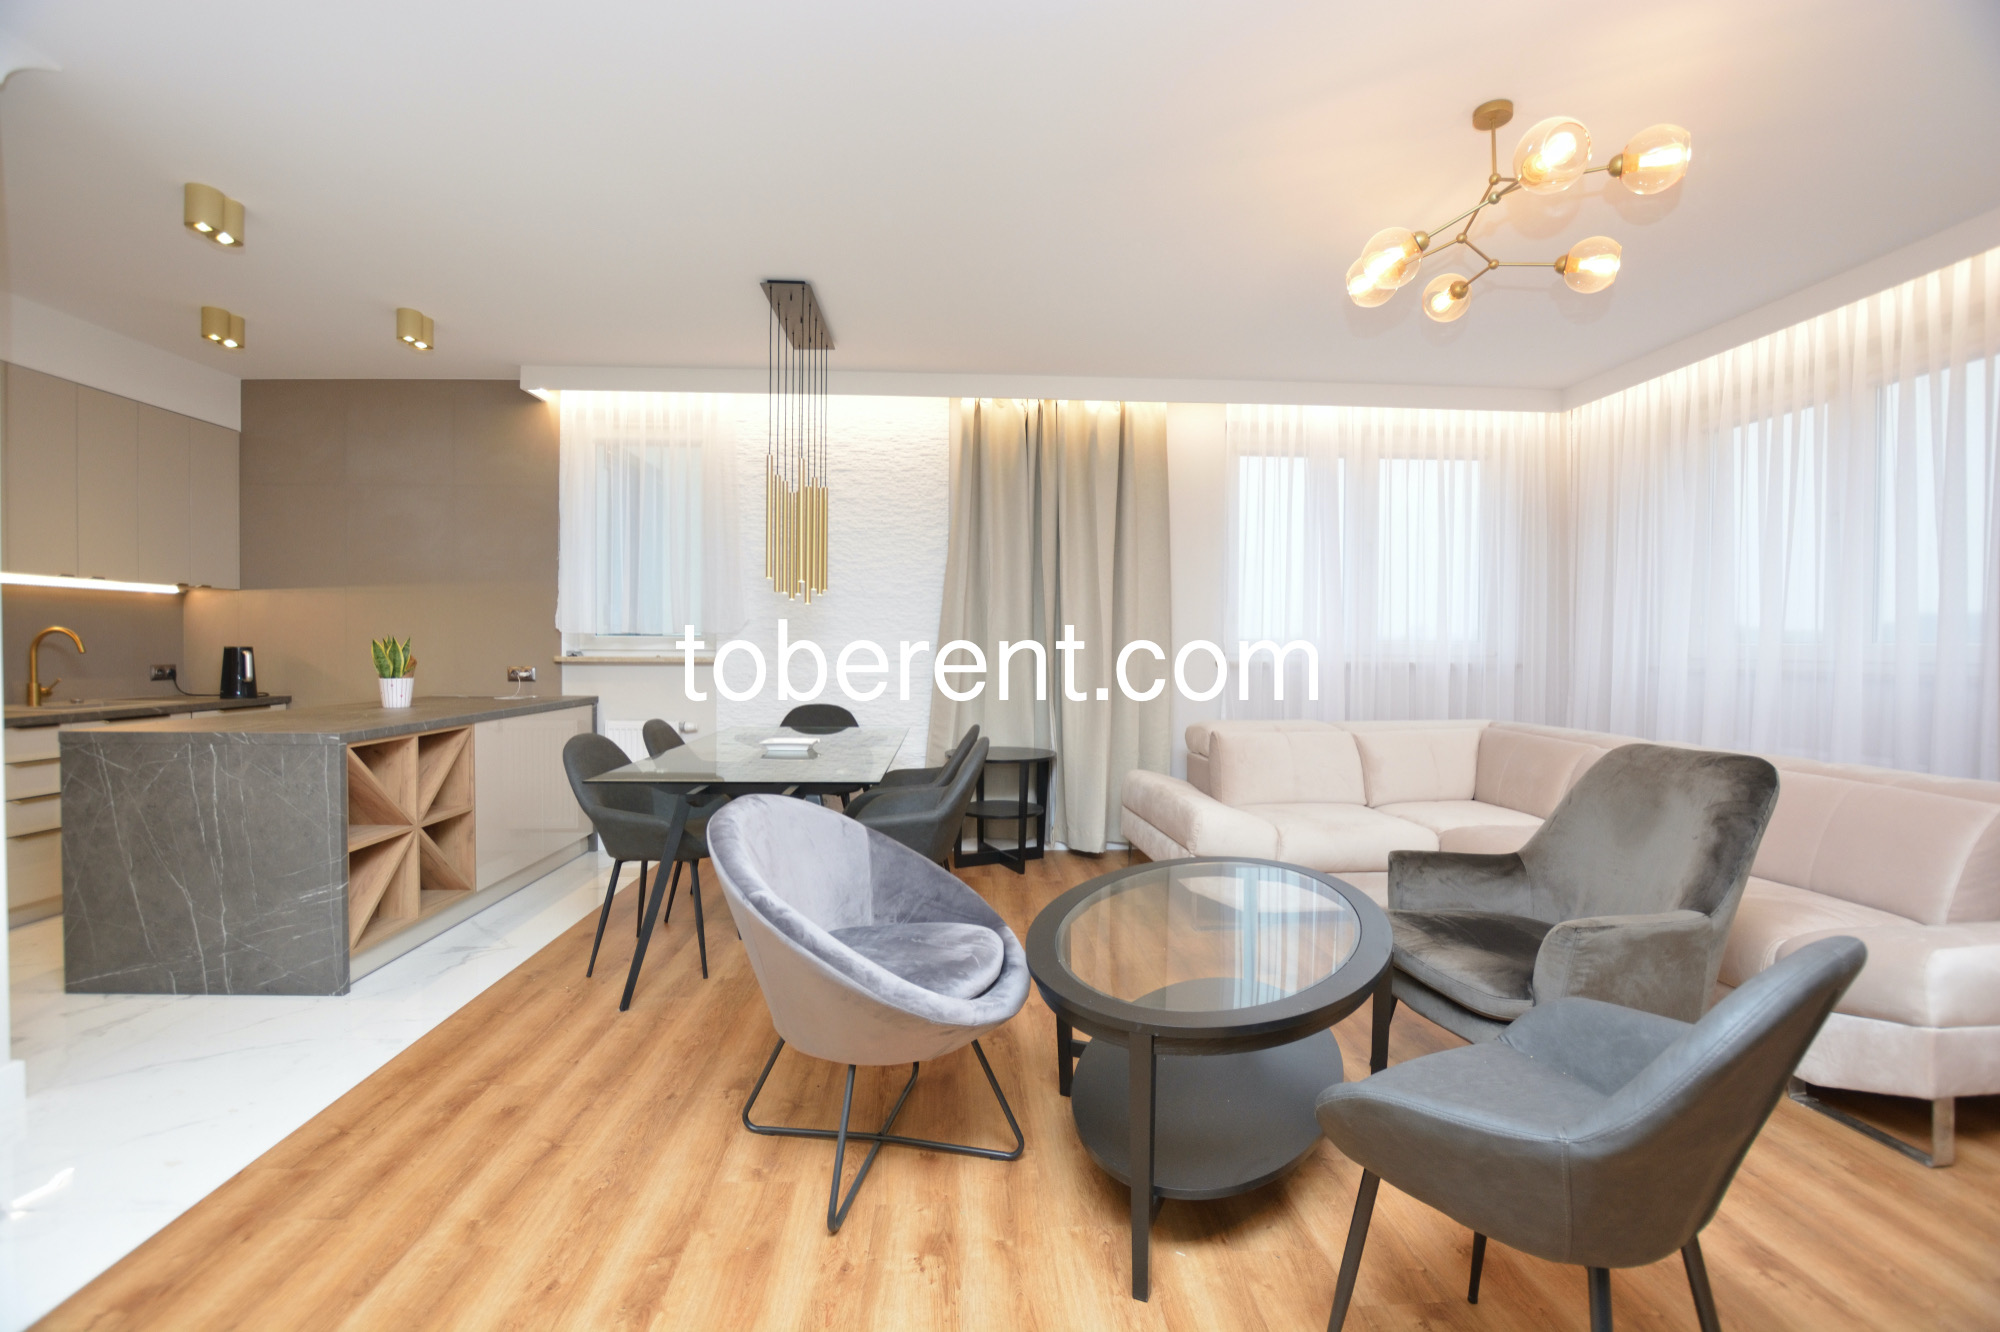 Apartment for rent in Gdynia Redłowo